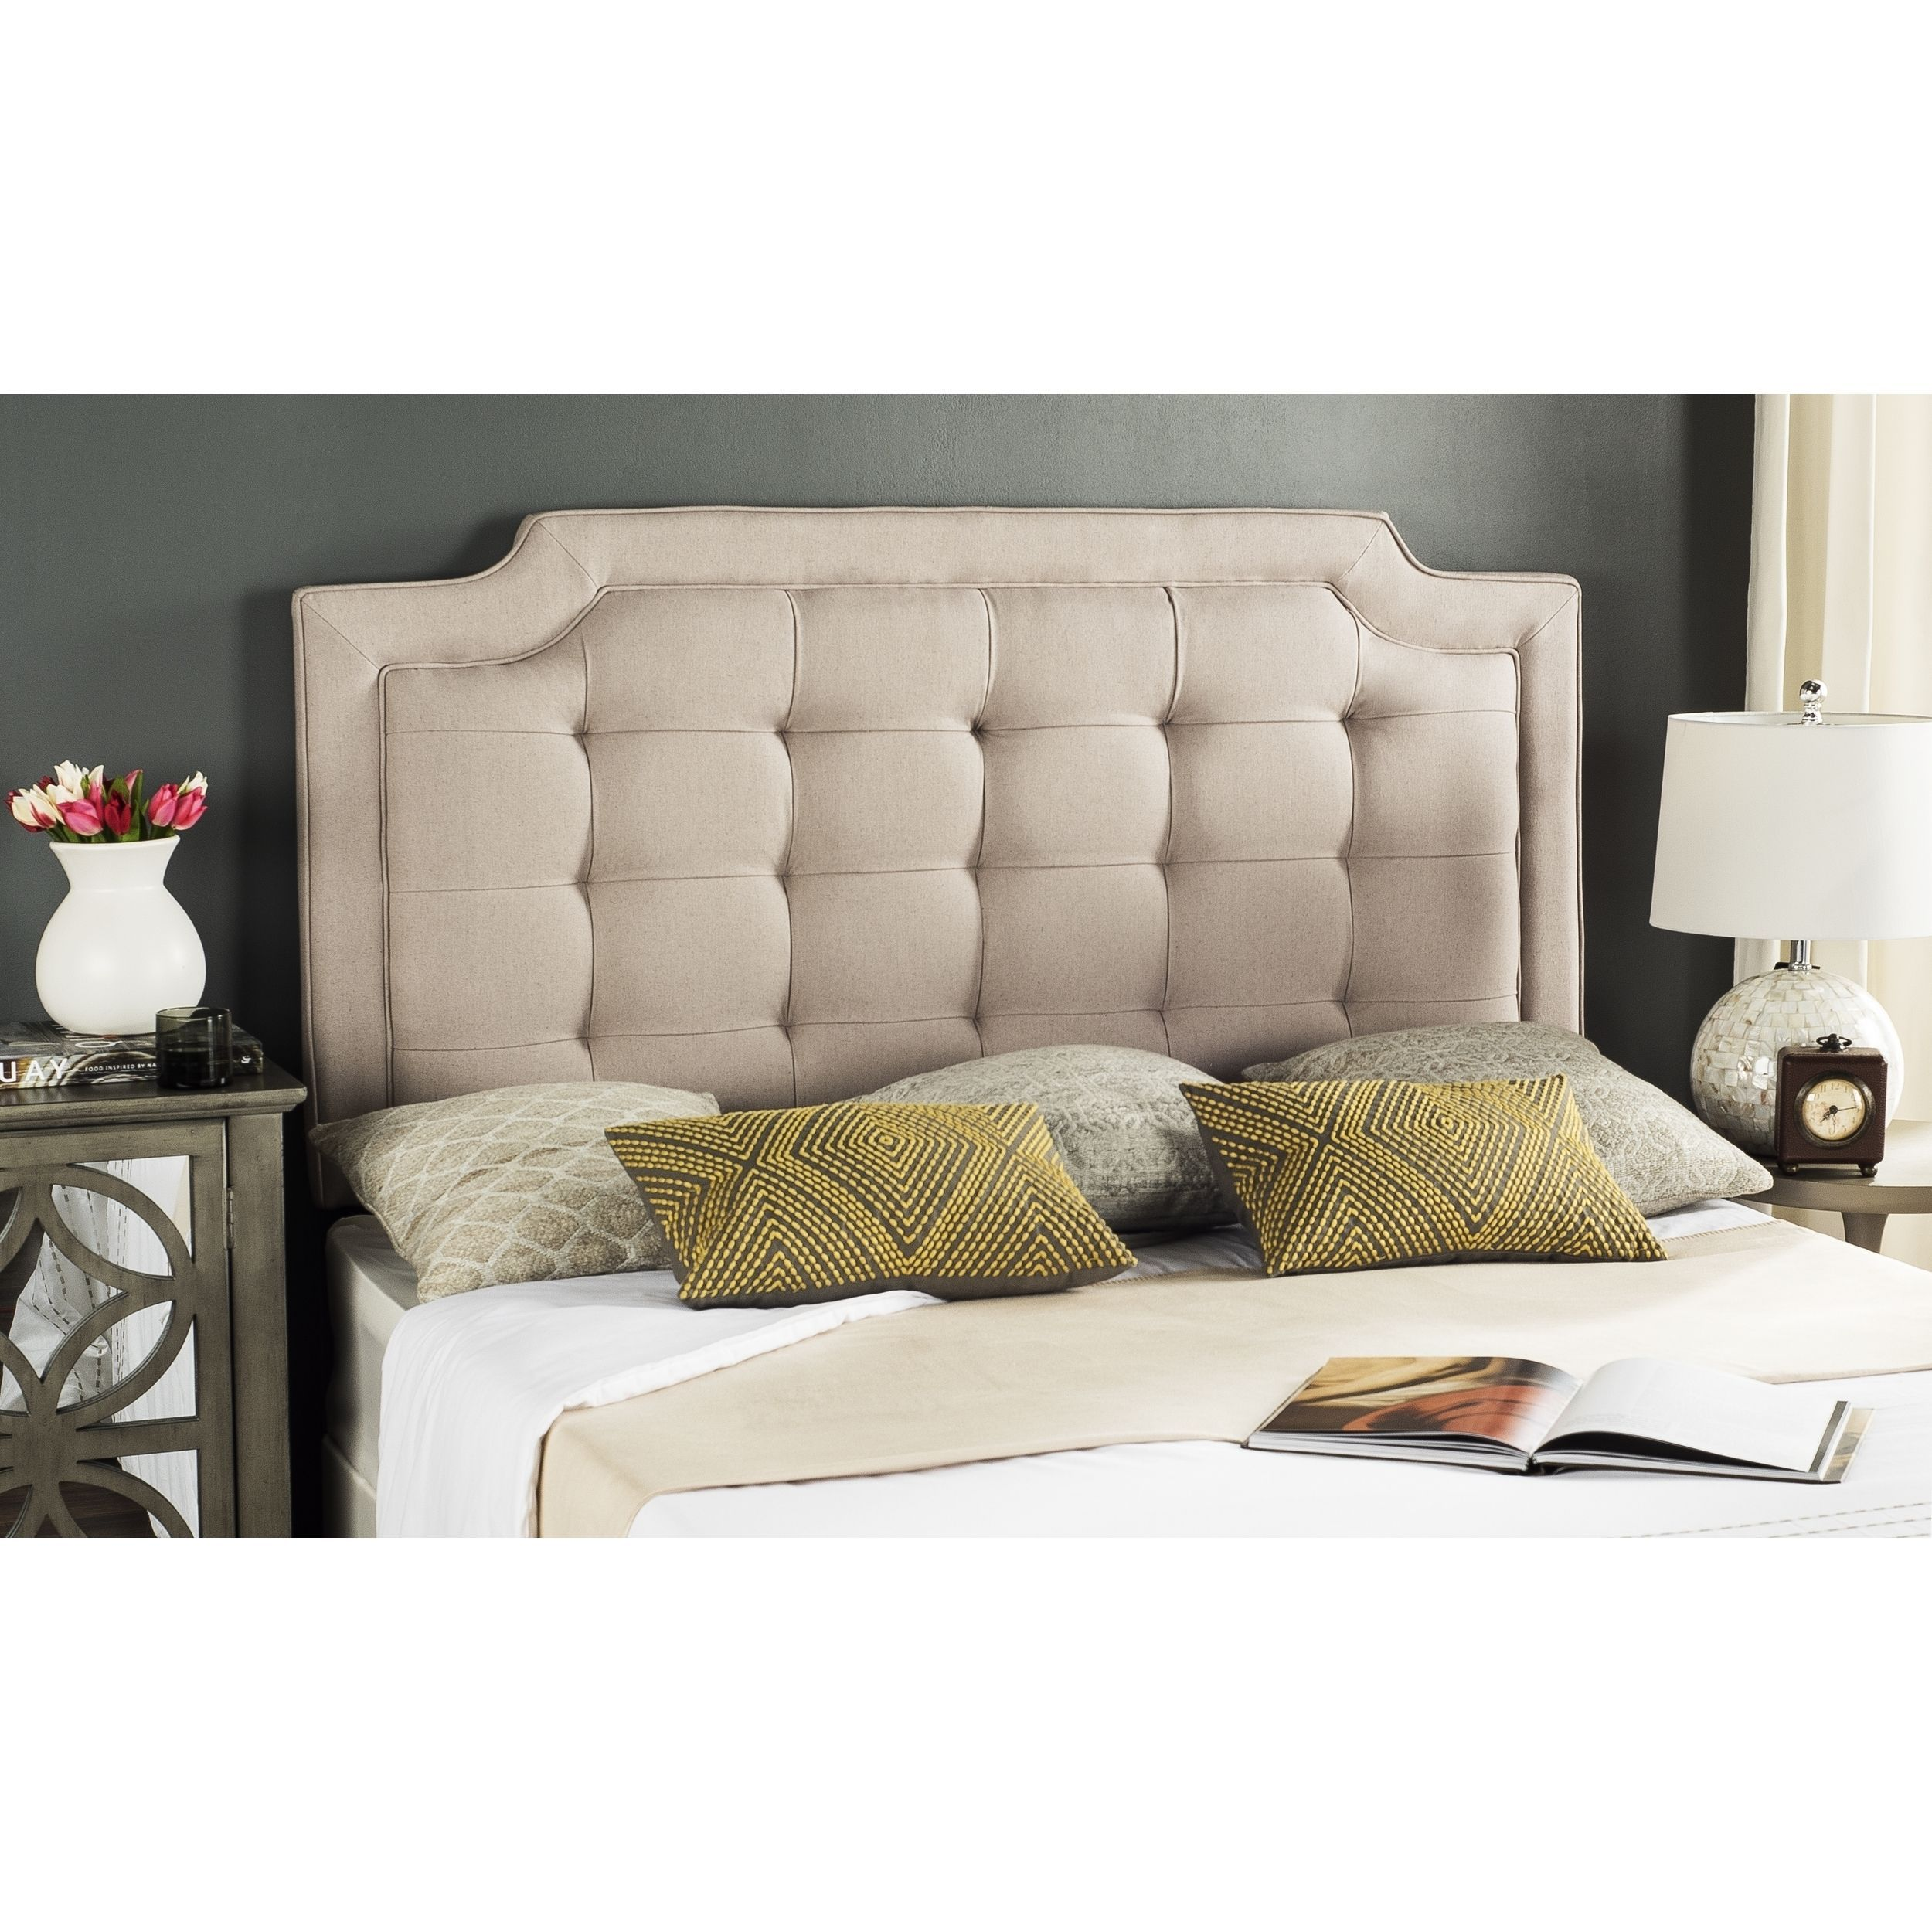 Safavieh Saphire Taupe Brown Upholstered Tufted Headboard Queen  # Muebles Saphire